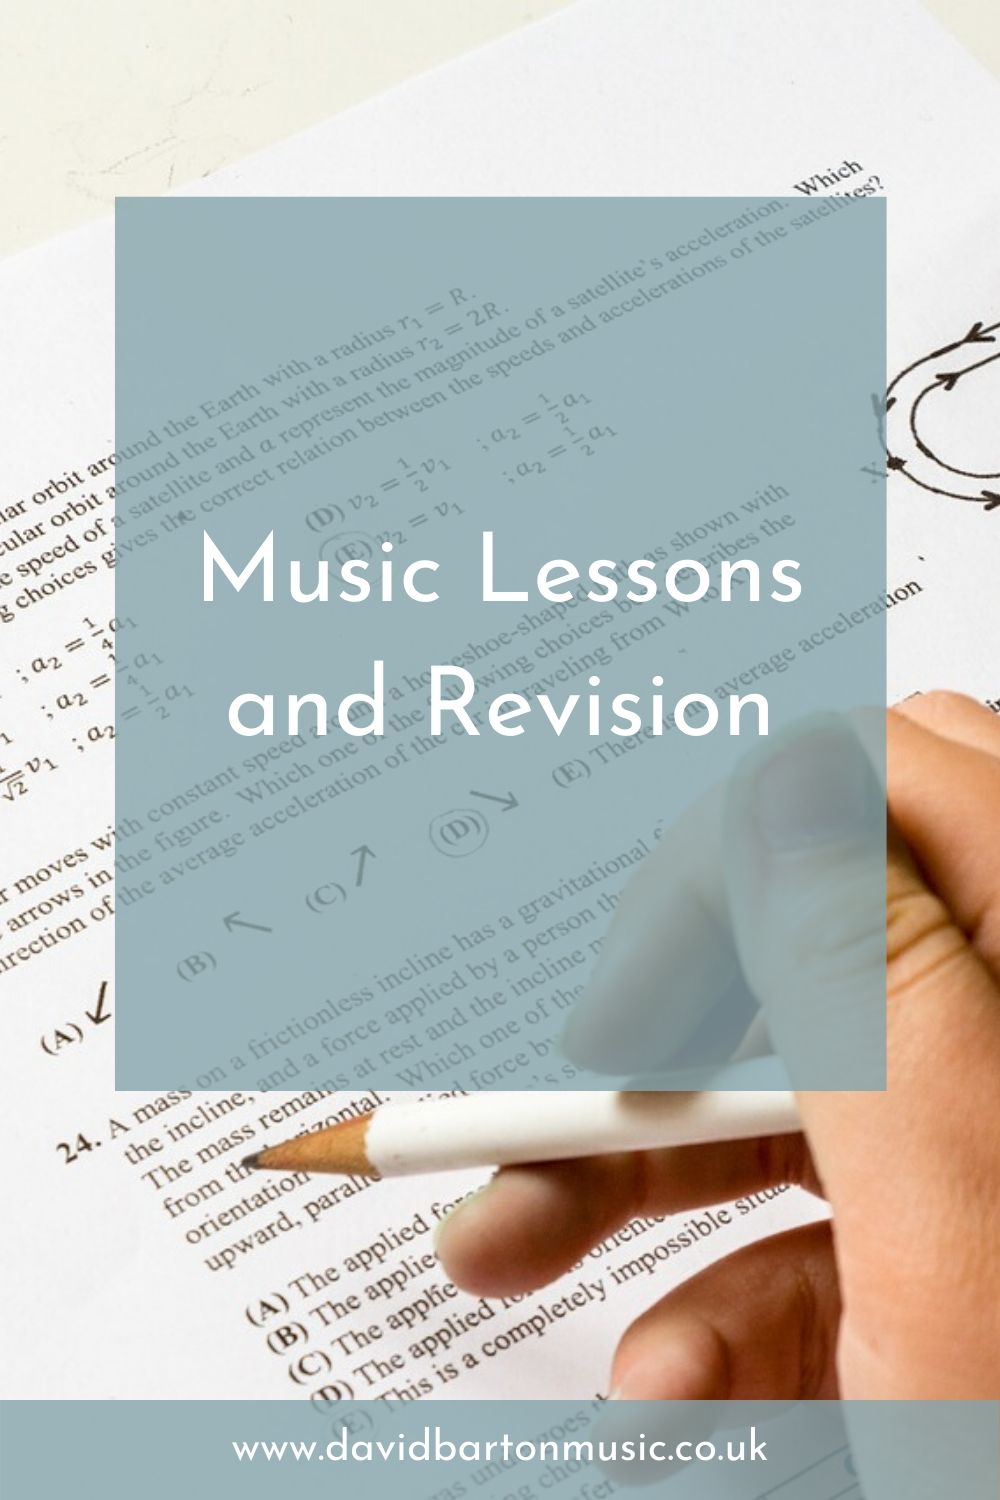 Music Lessons and Revision - Pinterest graphic